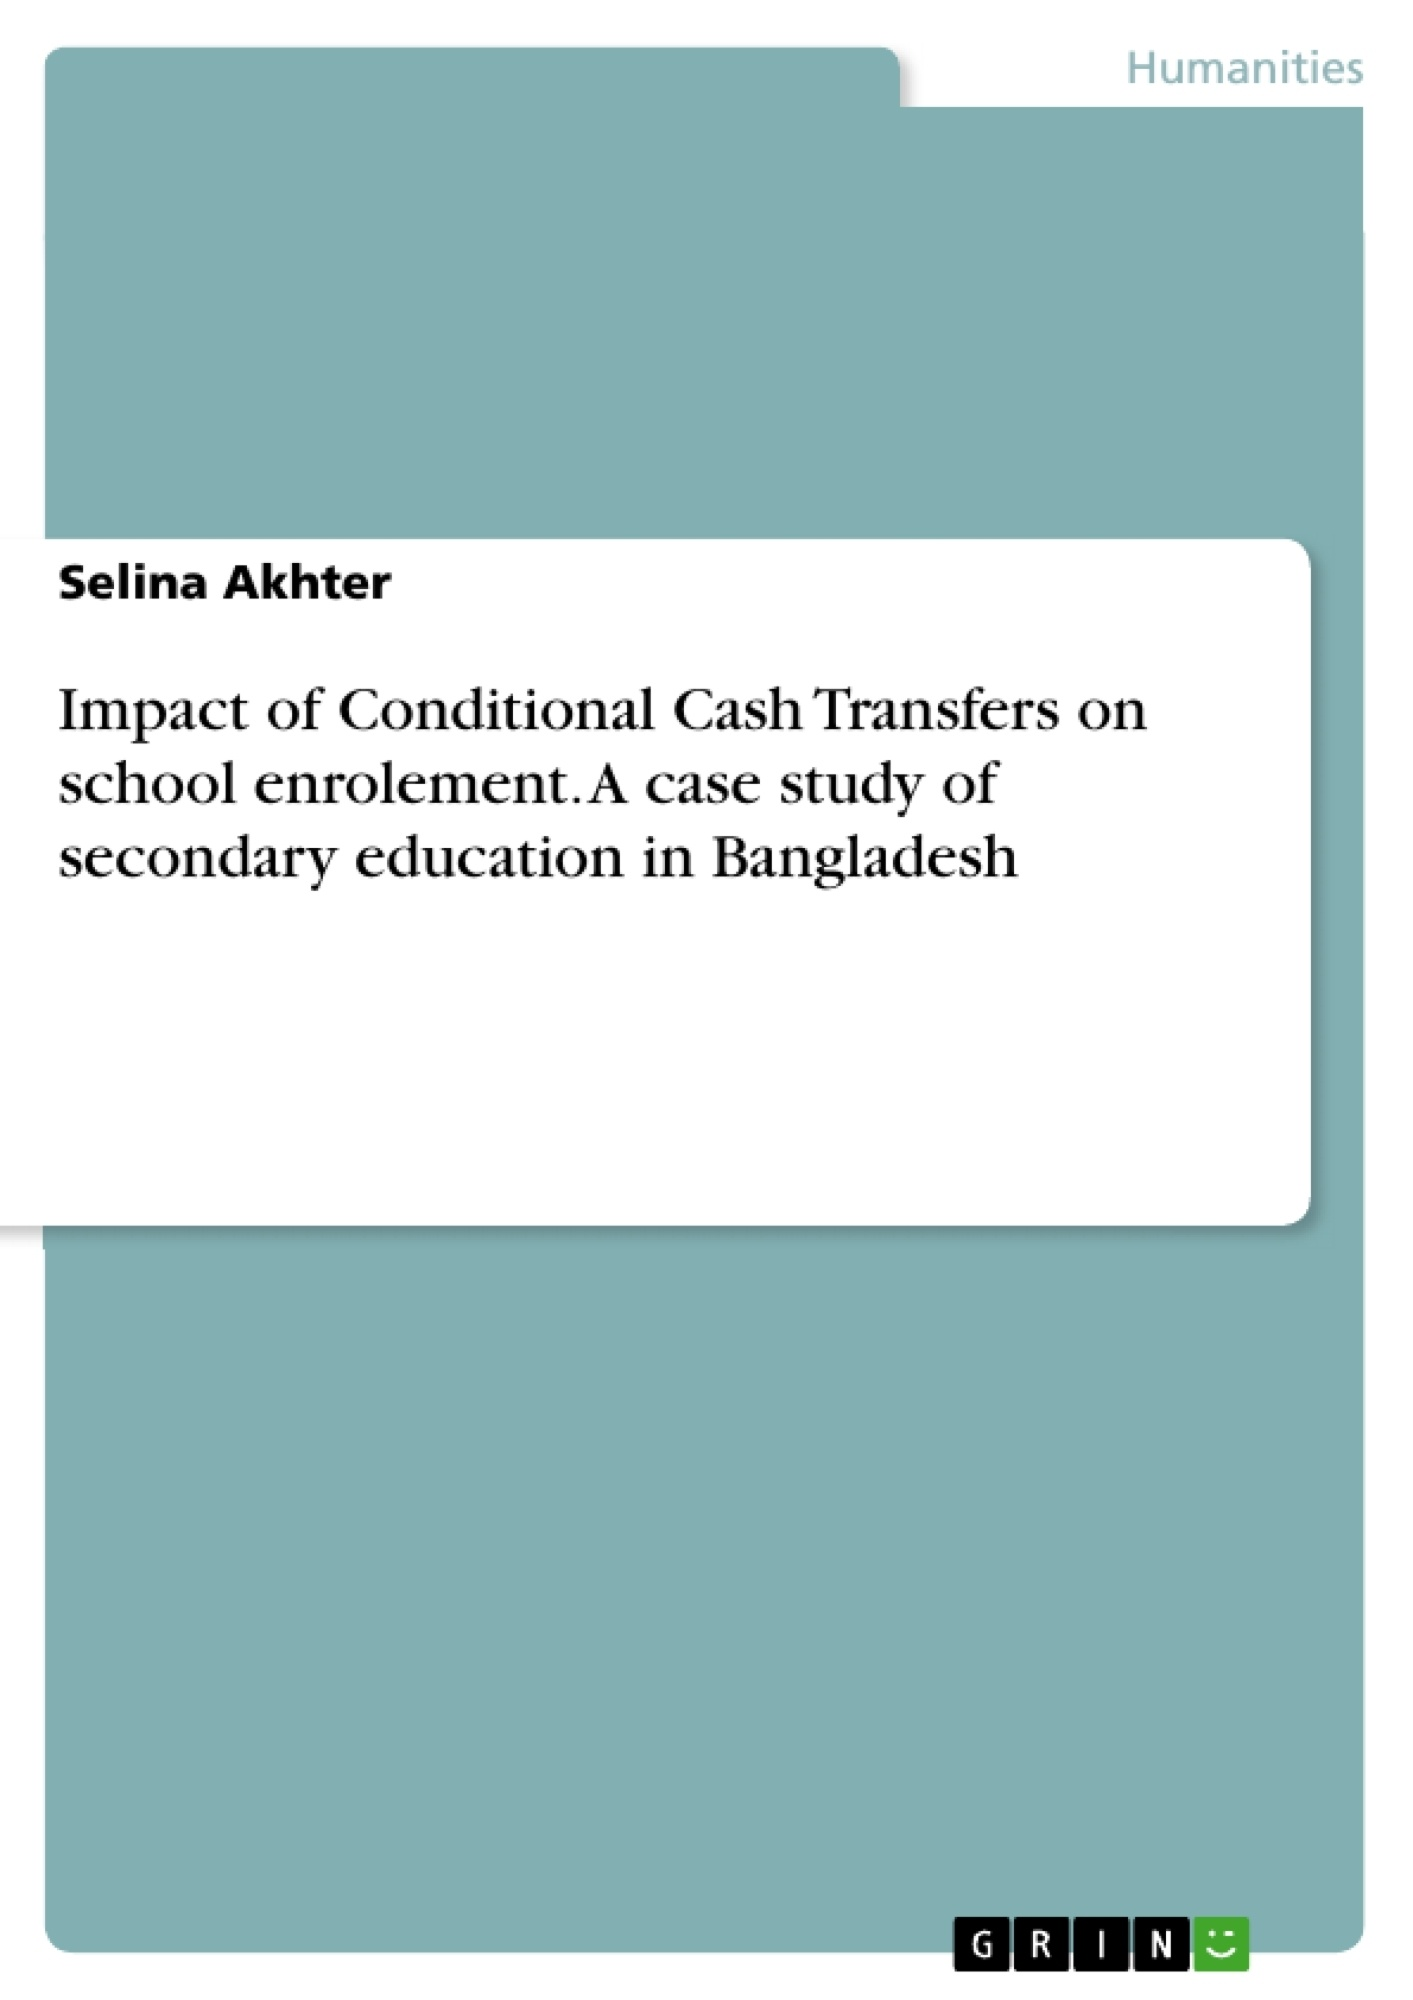 Title: Impact of Conditional Cash Transfers on school enrolement. A case study of secondary education in Bangladesh